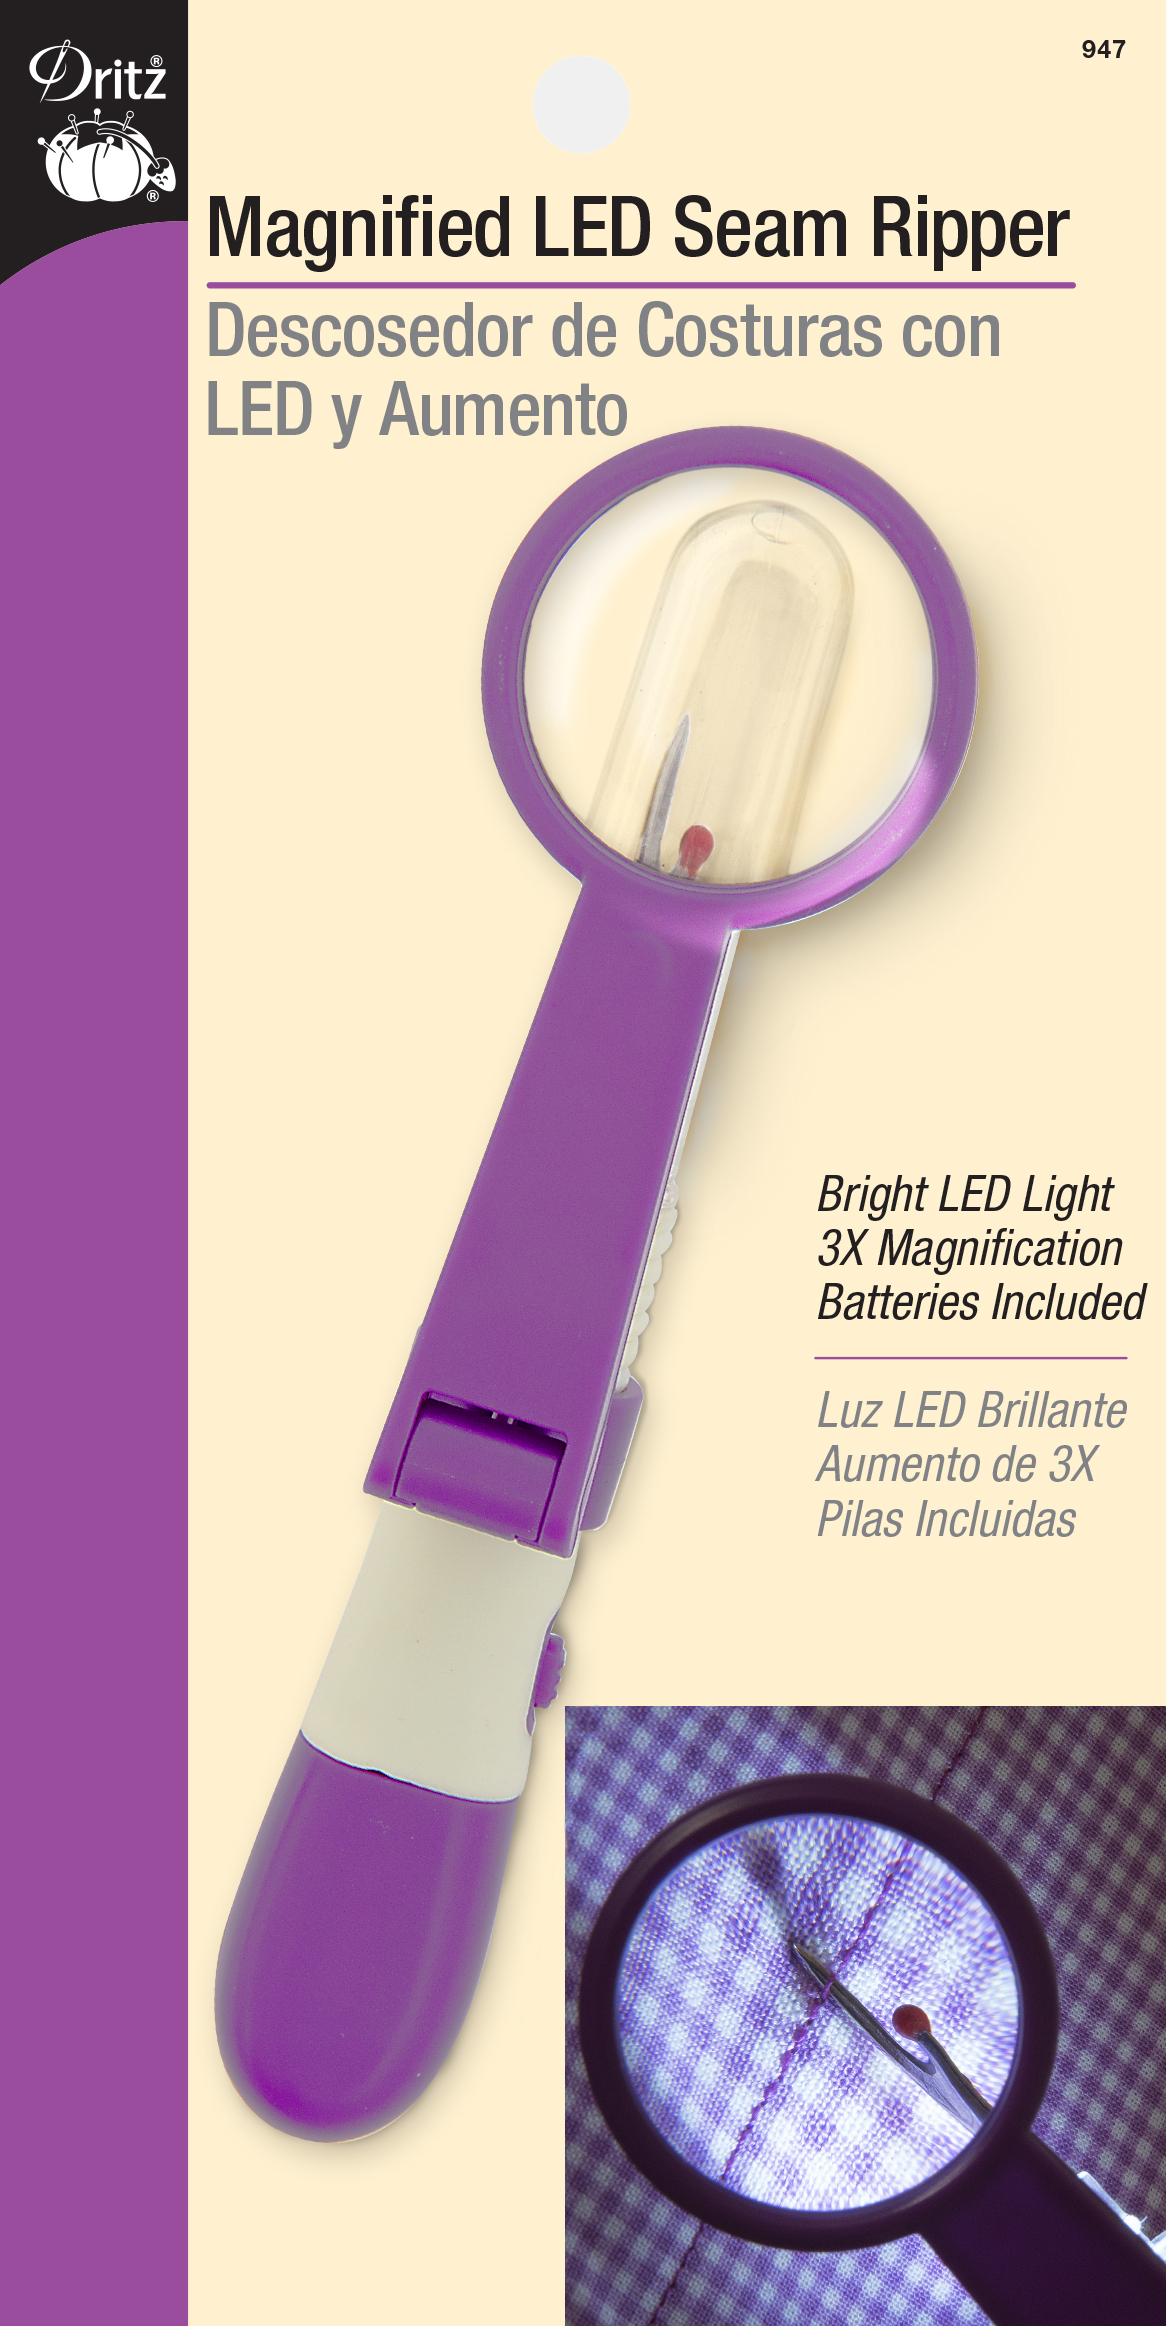 Magnified LED Seam Ripper